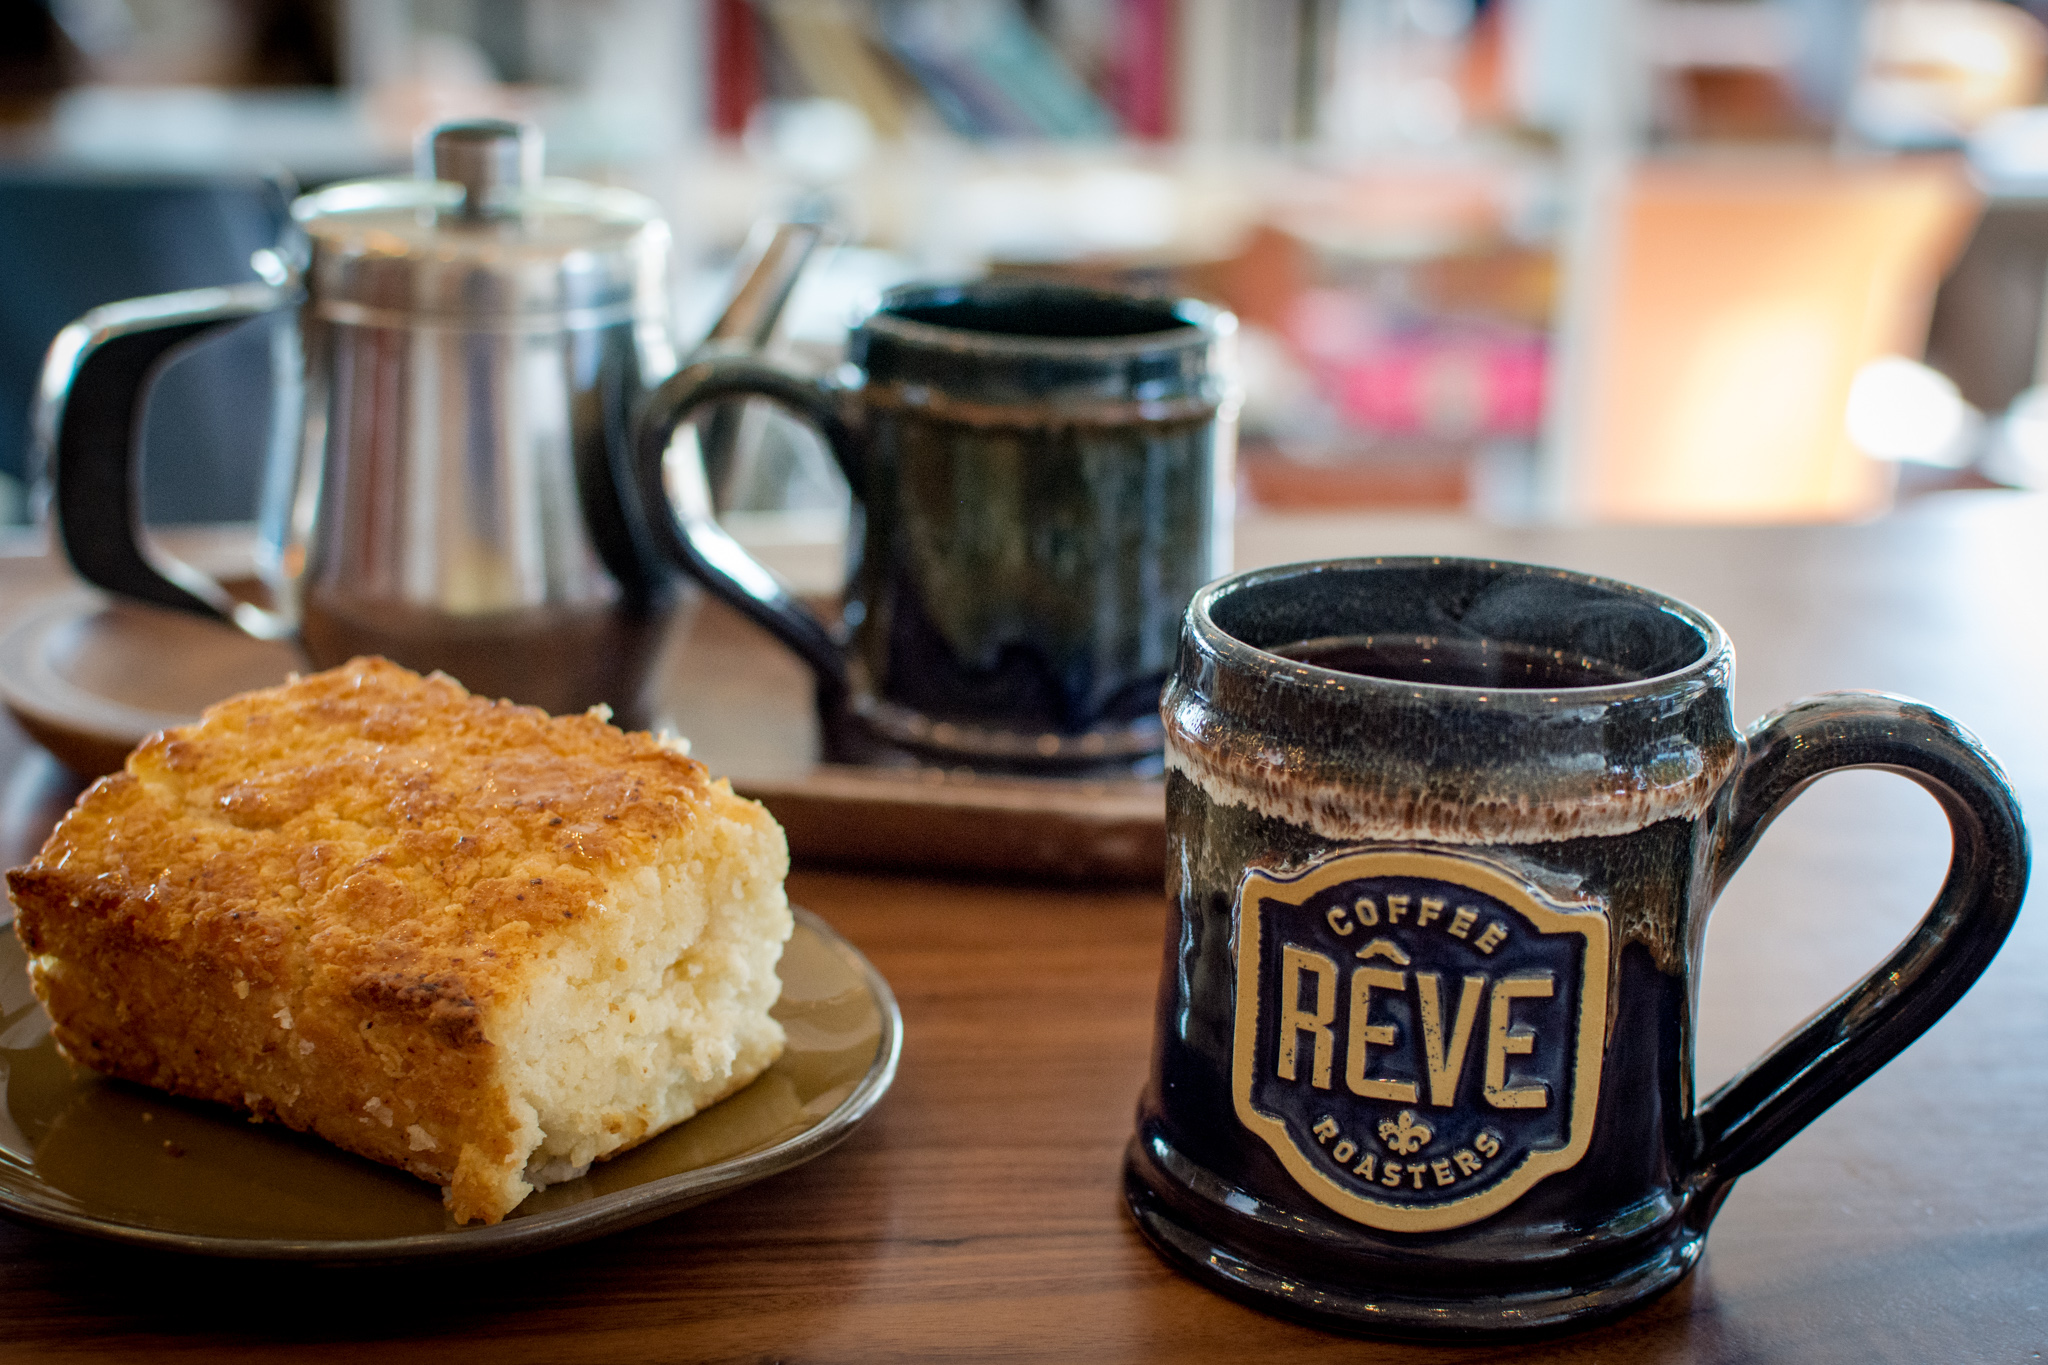 Reve Coffee and Food